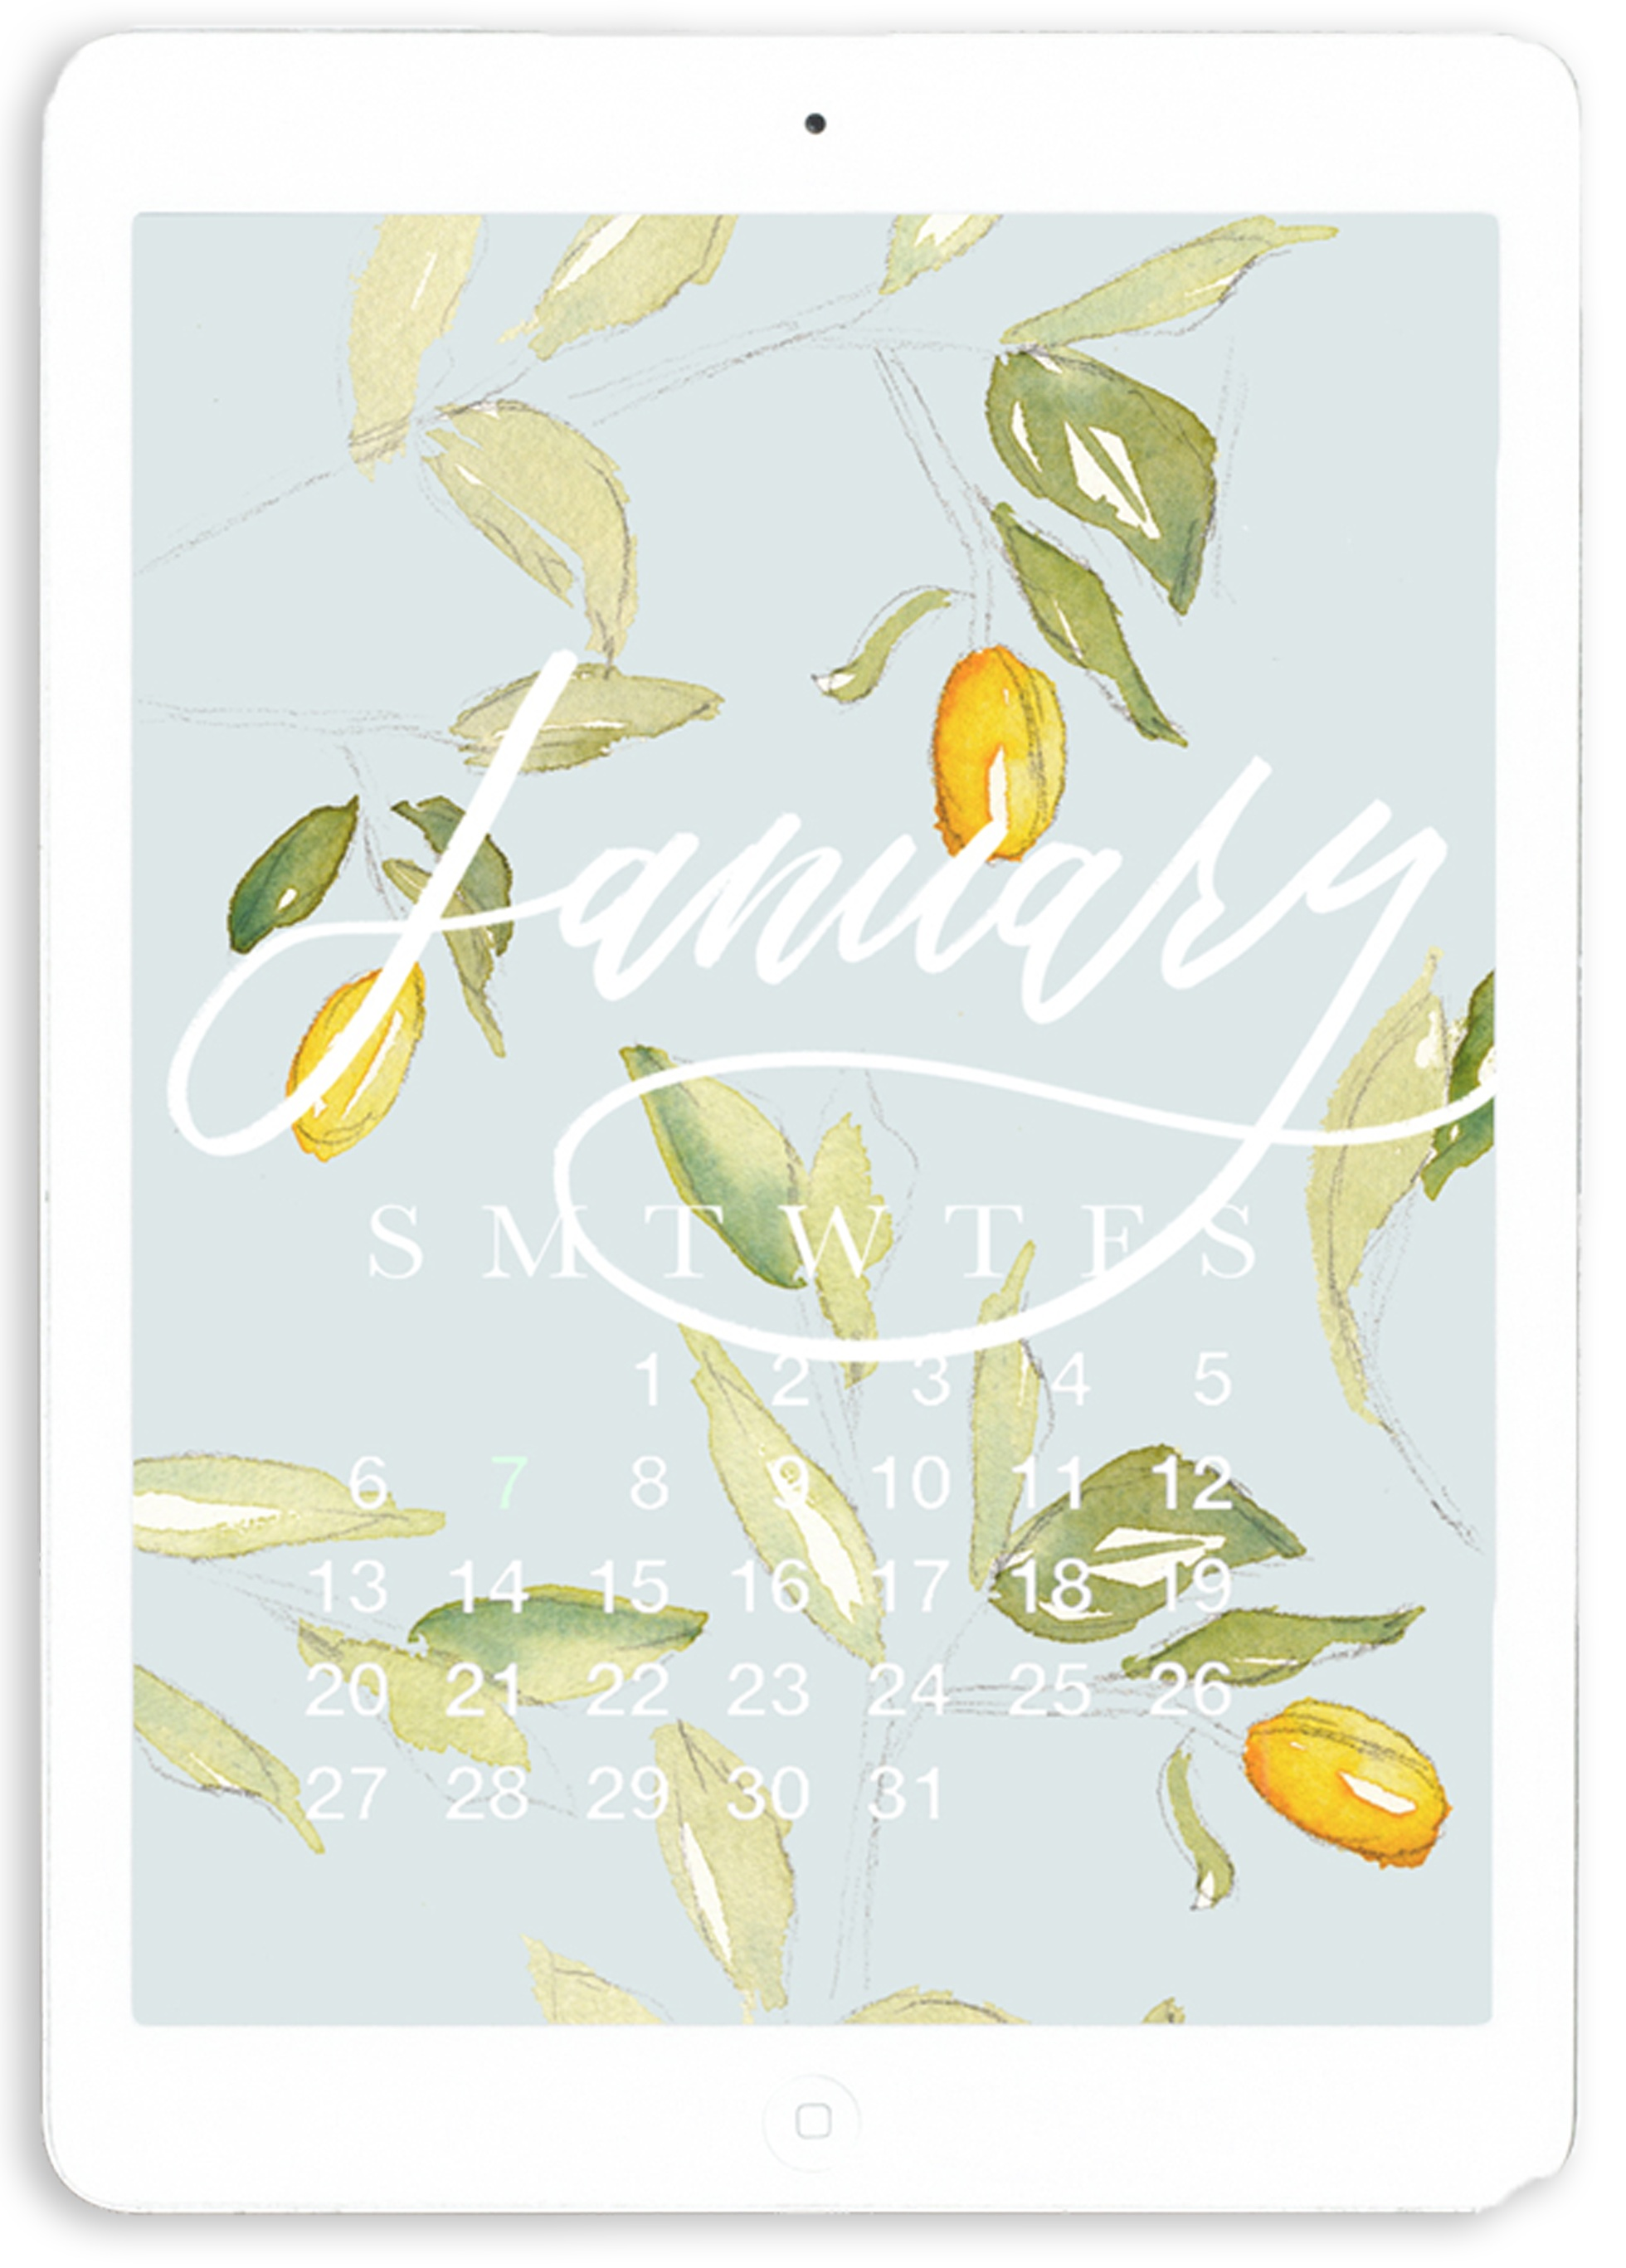 Free January 2019 Desktop and iPhone Calendar | Watercolor Kumquat Illustration with Brush Lettering Calligraphy | Lauren Antoniaa Calligraphy and Watercolor Artist